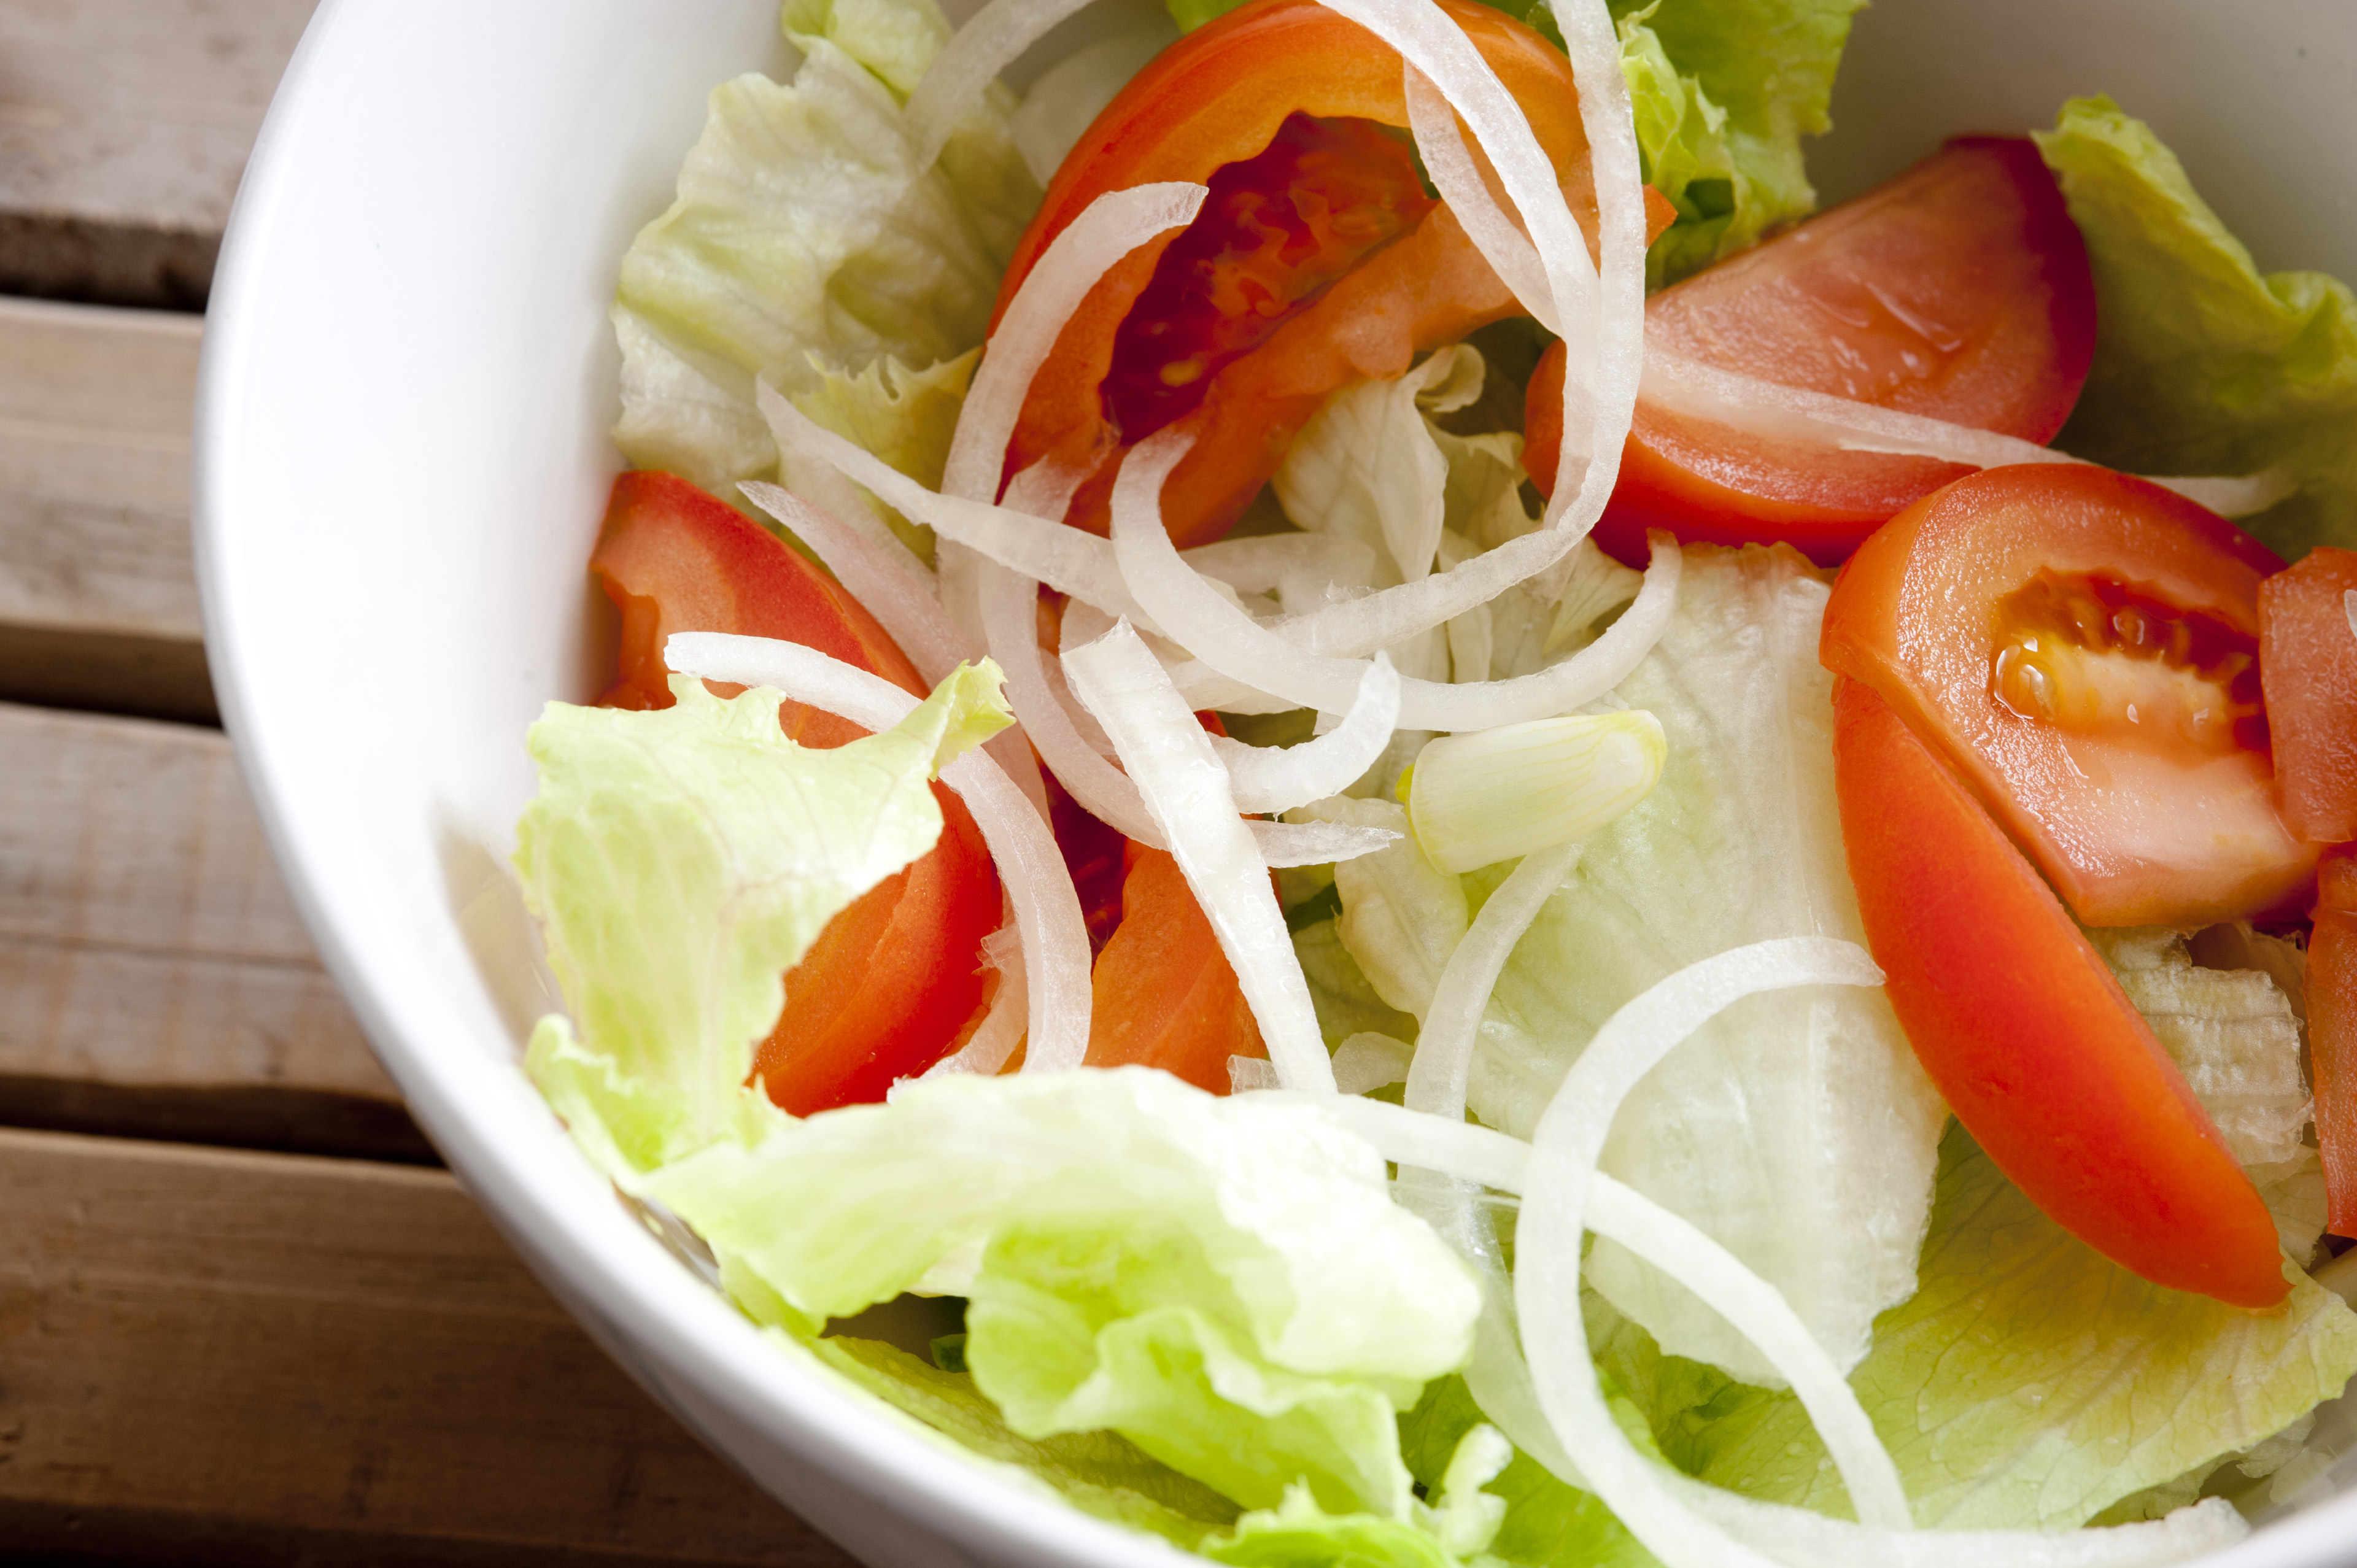 Freshly healthy mixed salad with juicy tomatoes, lettuce and onion tossed in a bowl, high angle view